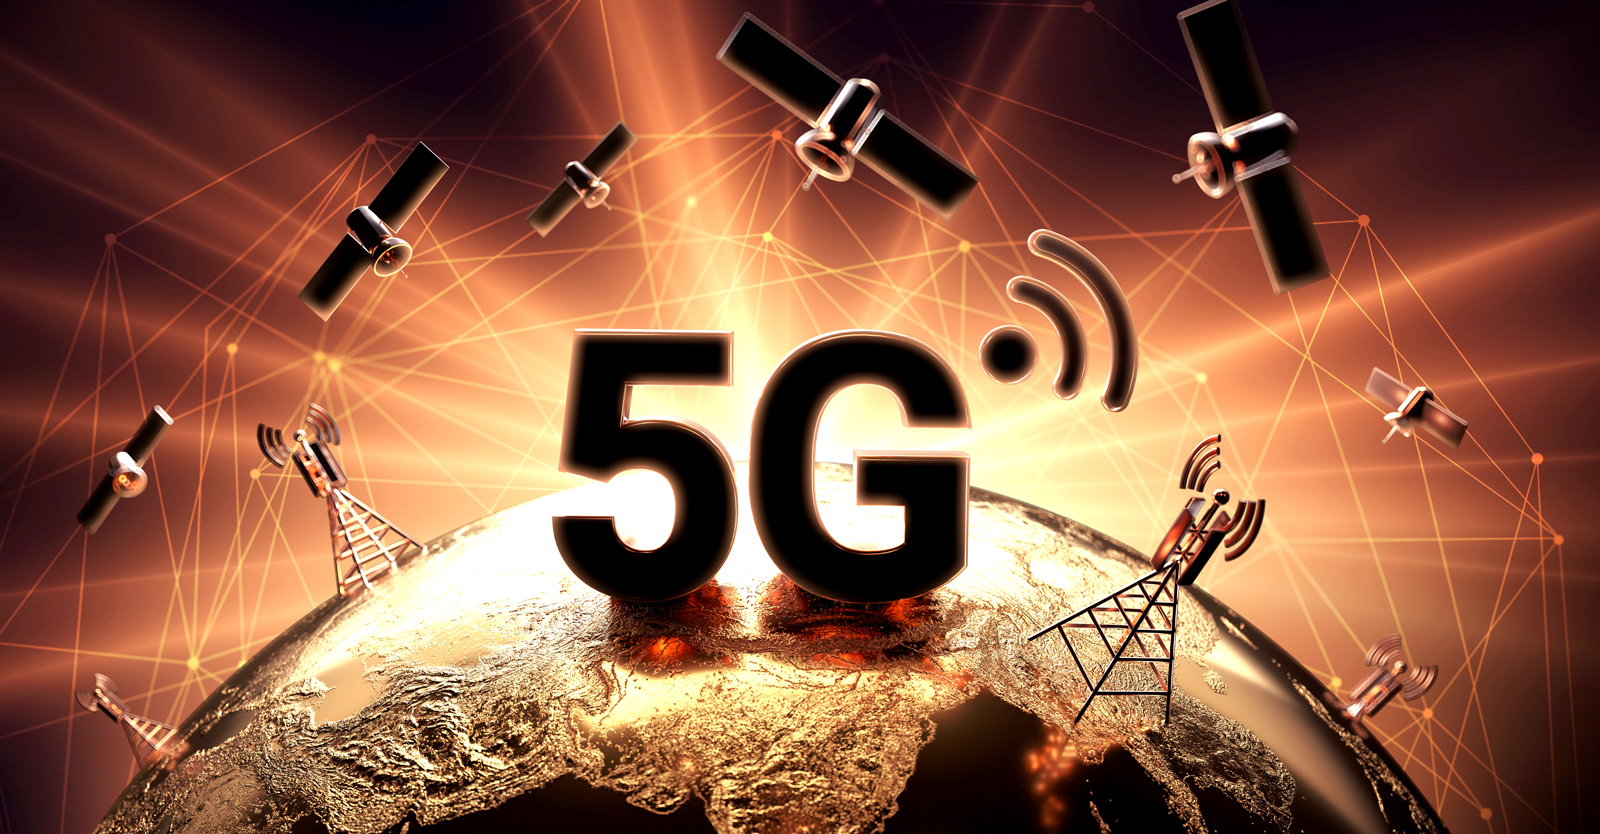 upcoming-protests-to-focus-on-health,-environmental-impacts-of-5g-satellites-•-children's-health-defense